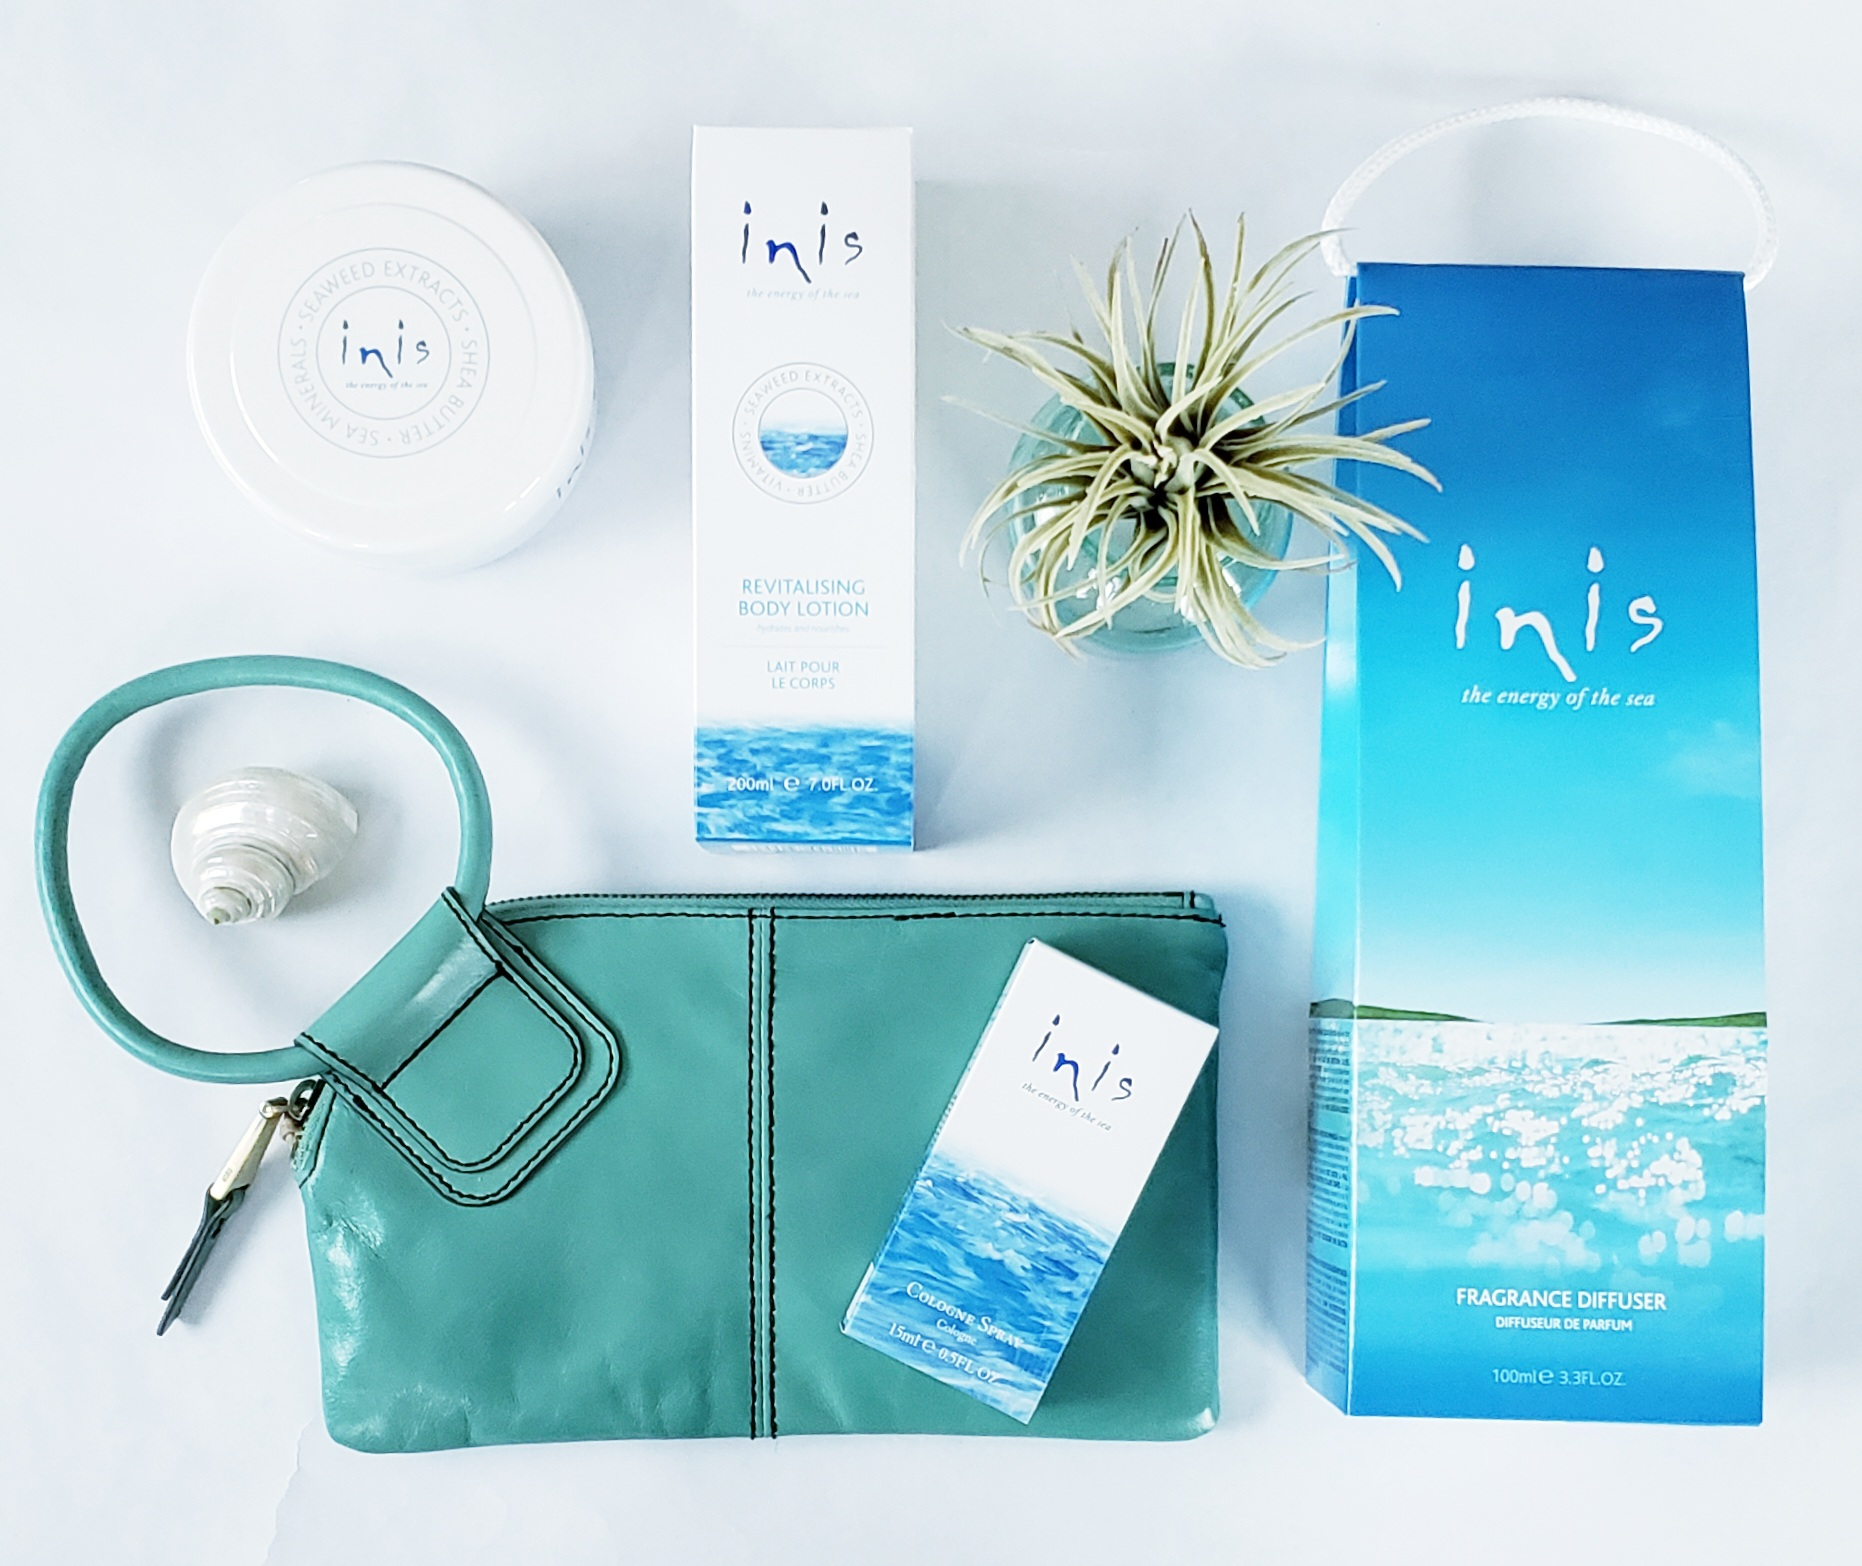 Inis bath & Body